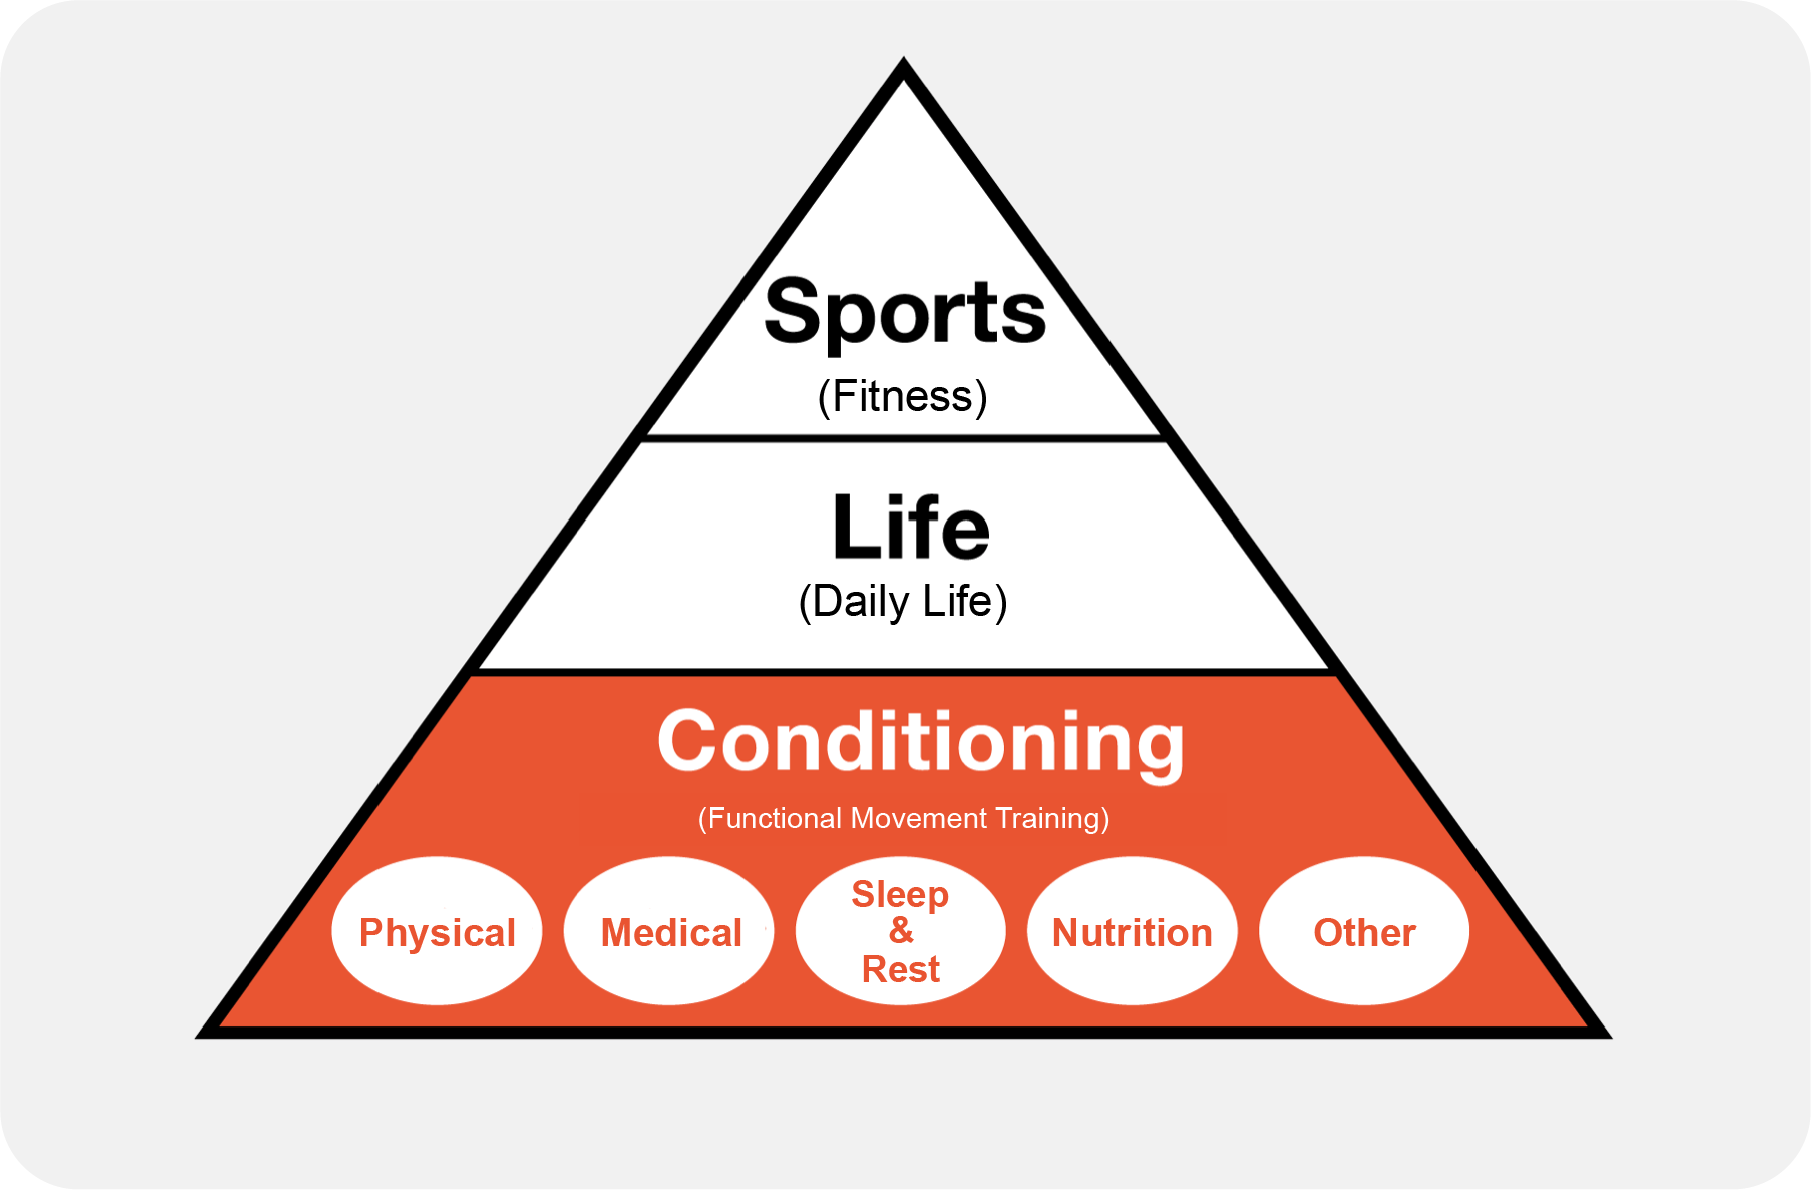 About Conditioning